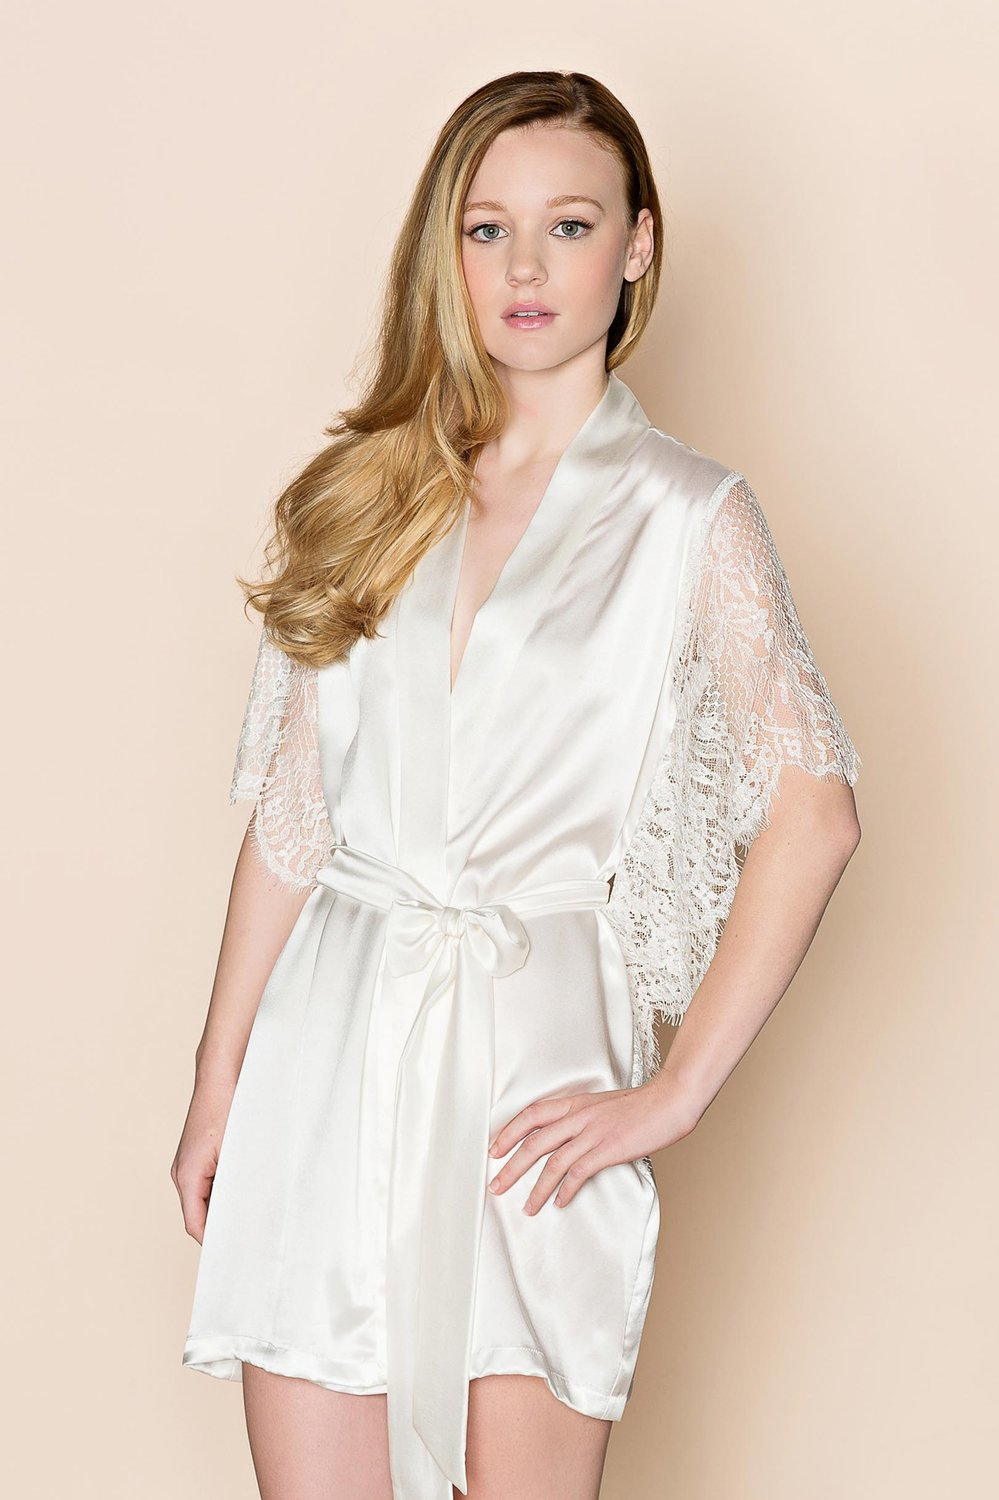 Grace winged Silk & Lace Bridal lace robe with butterfly sleeves in Ivory